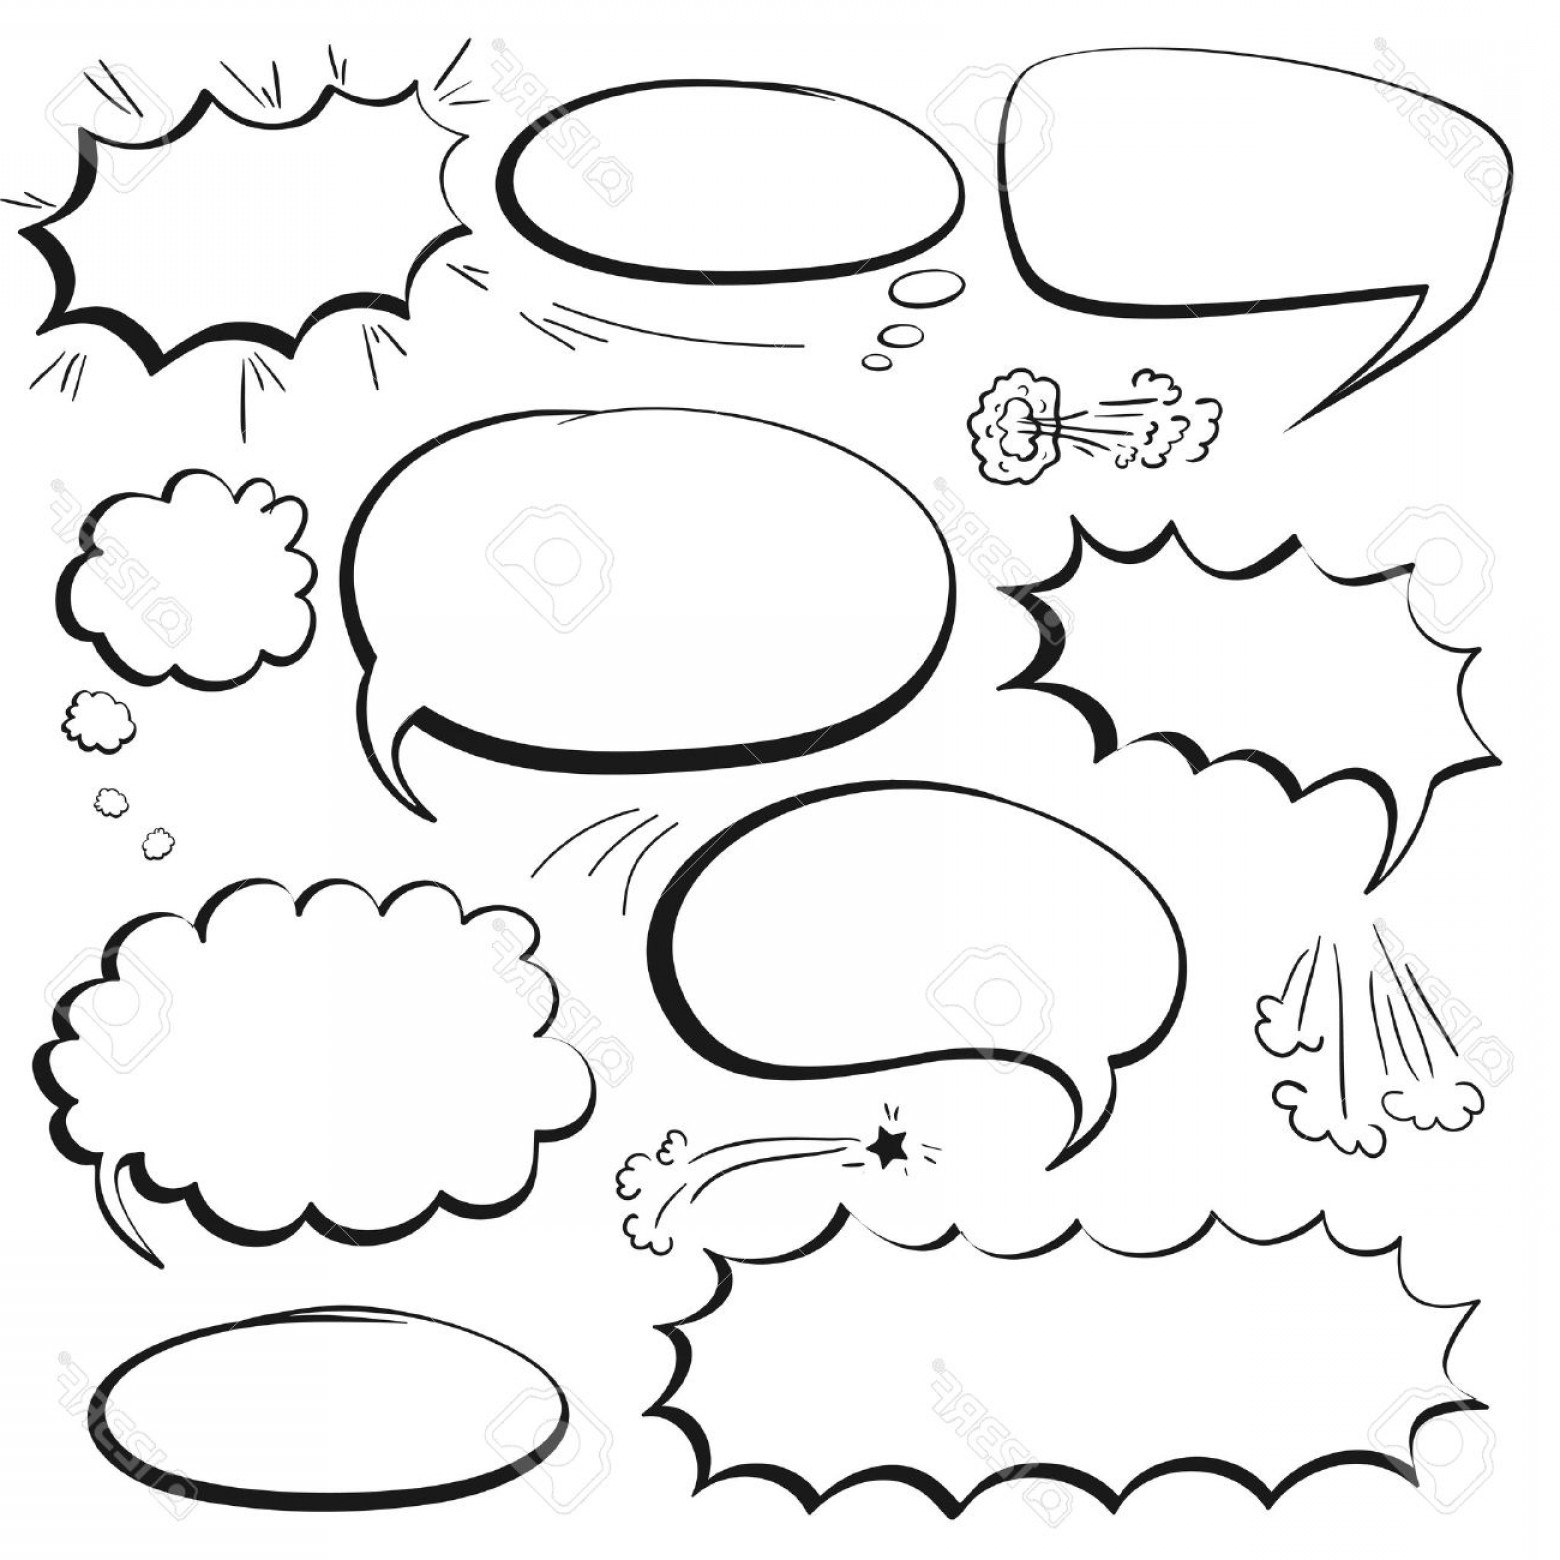 Vector Art Black And White Bubbles: Photostock Vector Set Of Empty Graphic Black And White Comics Speech Bubbles Vector Templates For Your Text